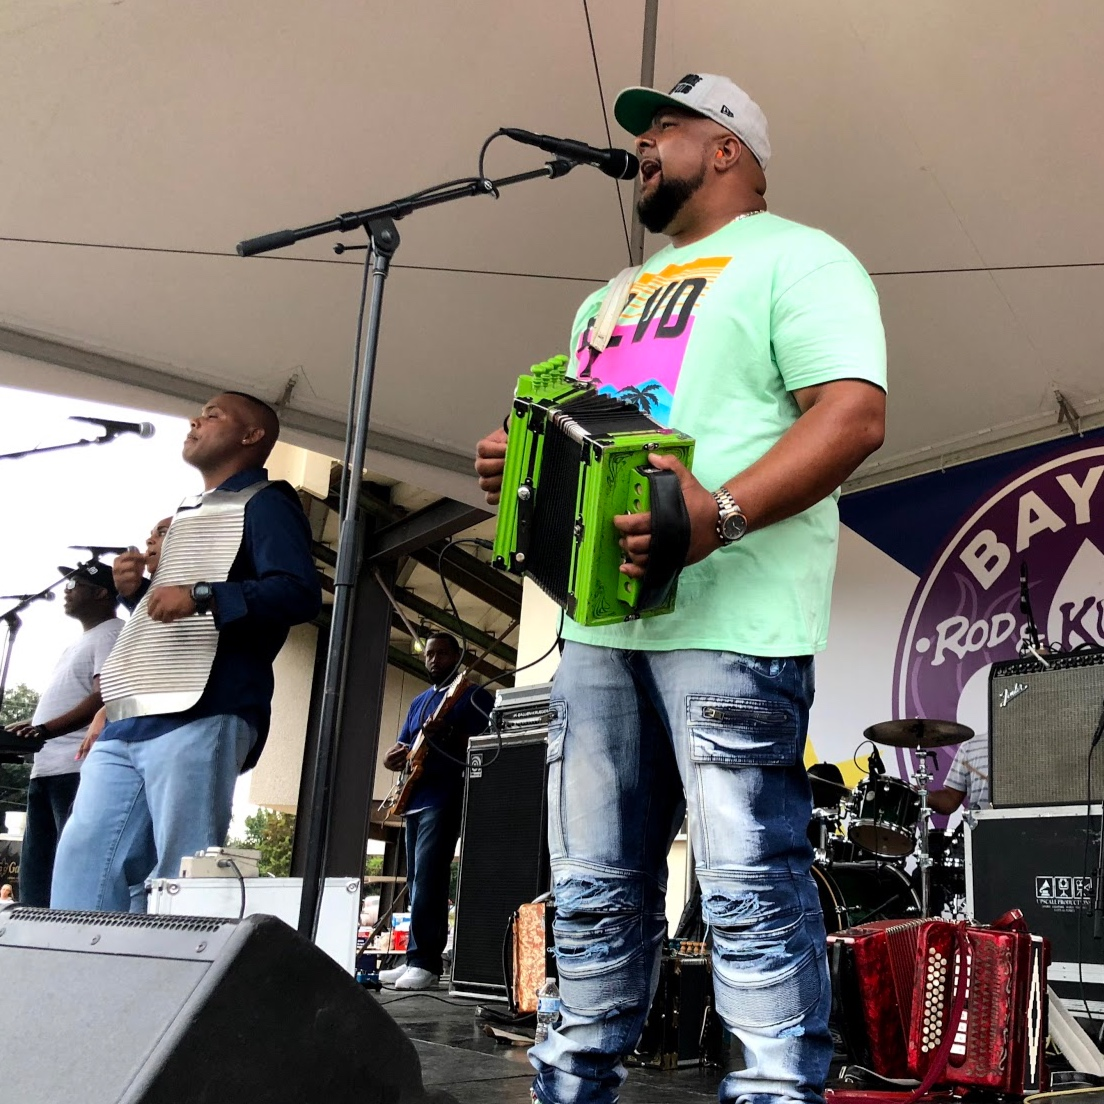 Keith Frank and the Soileau Zydeco Band performing at the 4th Annual Bayou Round Up